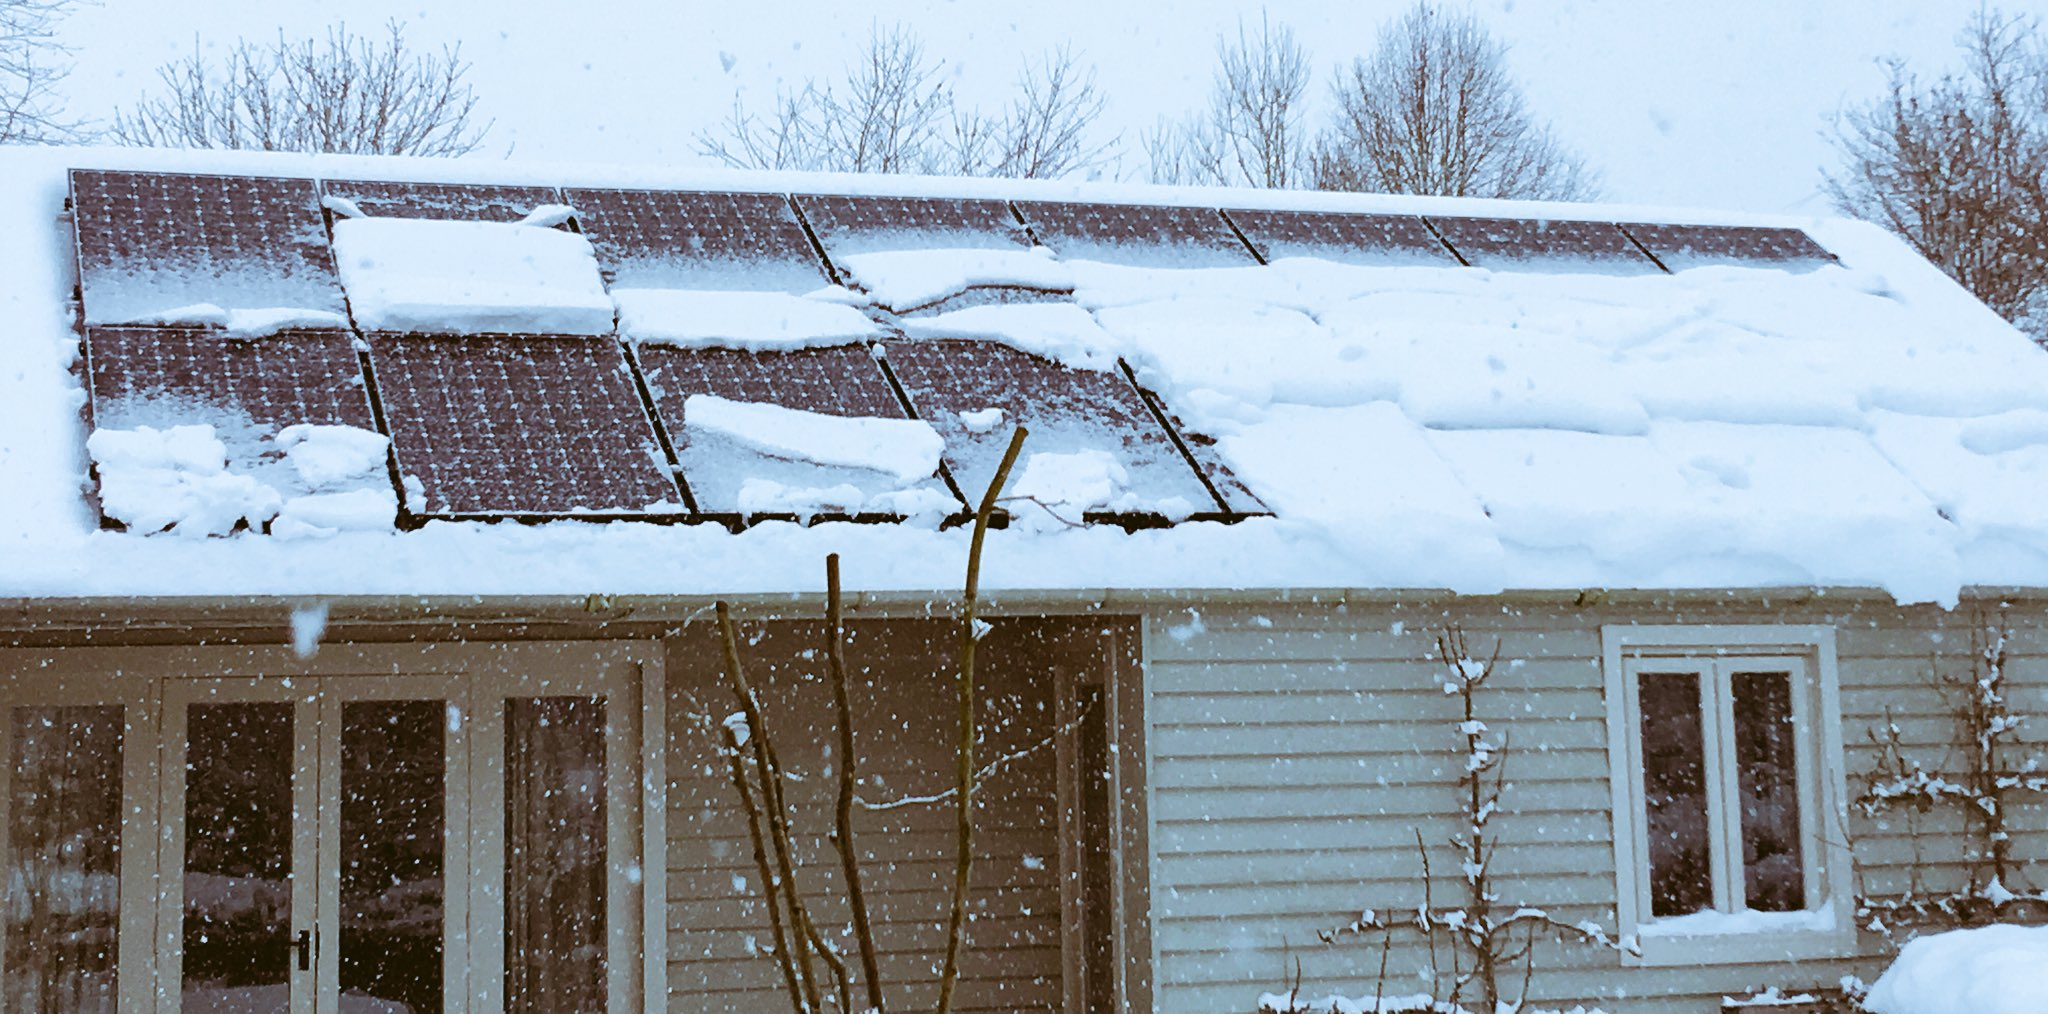 Here's what happens with snow on solar PV. Tiny bit of solar warms them fractionally and snow slides off https://t.co/CDjQXr5zhr